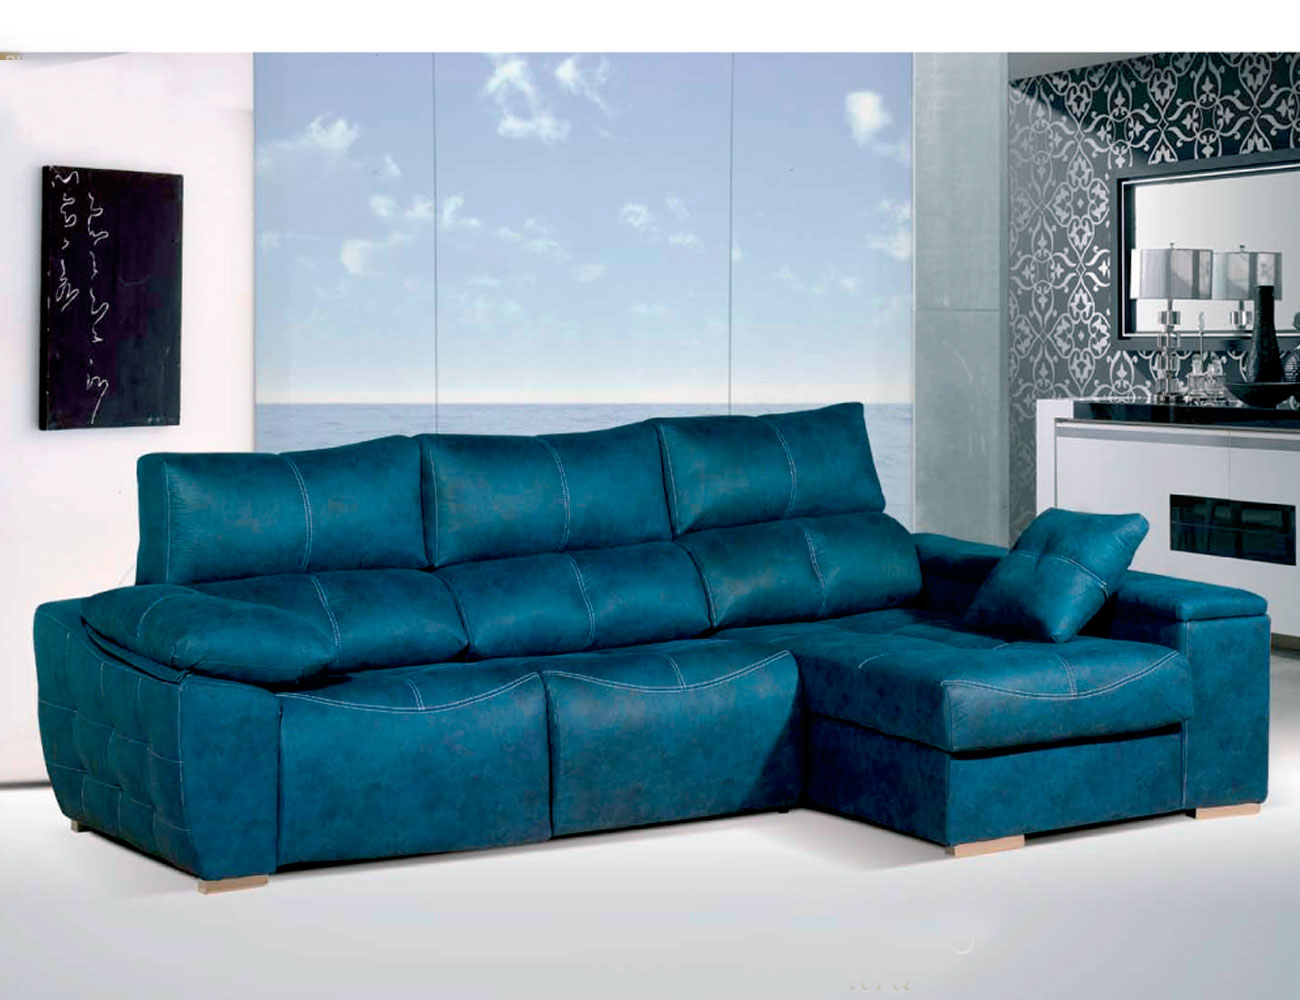 Sofa chaiselongue relax 2 motores anti manchas turquesa7